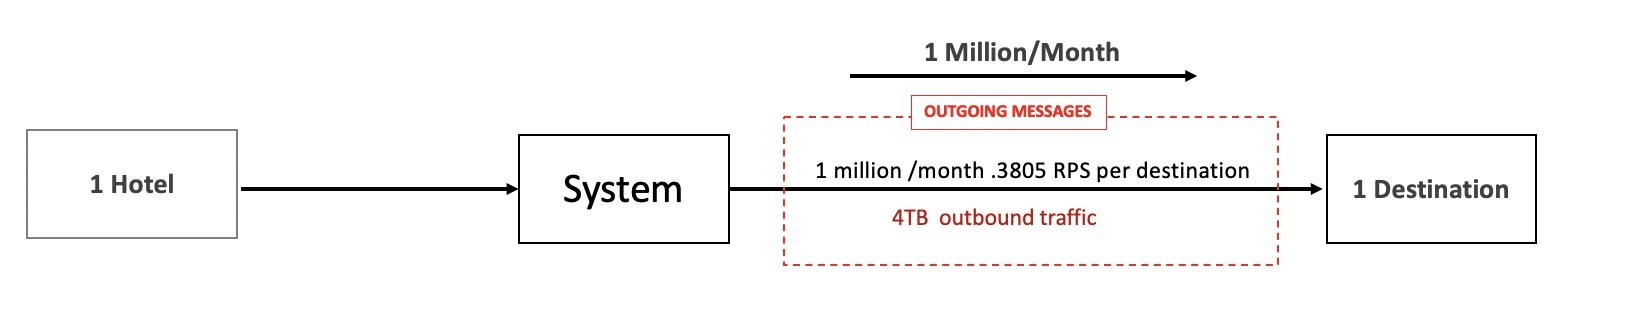 Figure 1: Architecture showing a system sending messages from 1 hotel to 1 destination (.3805 RPS)